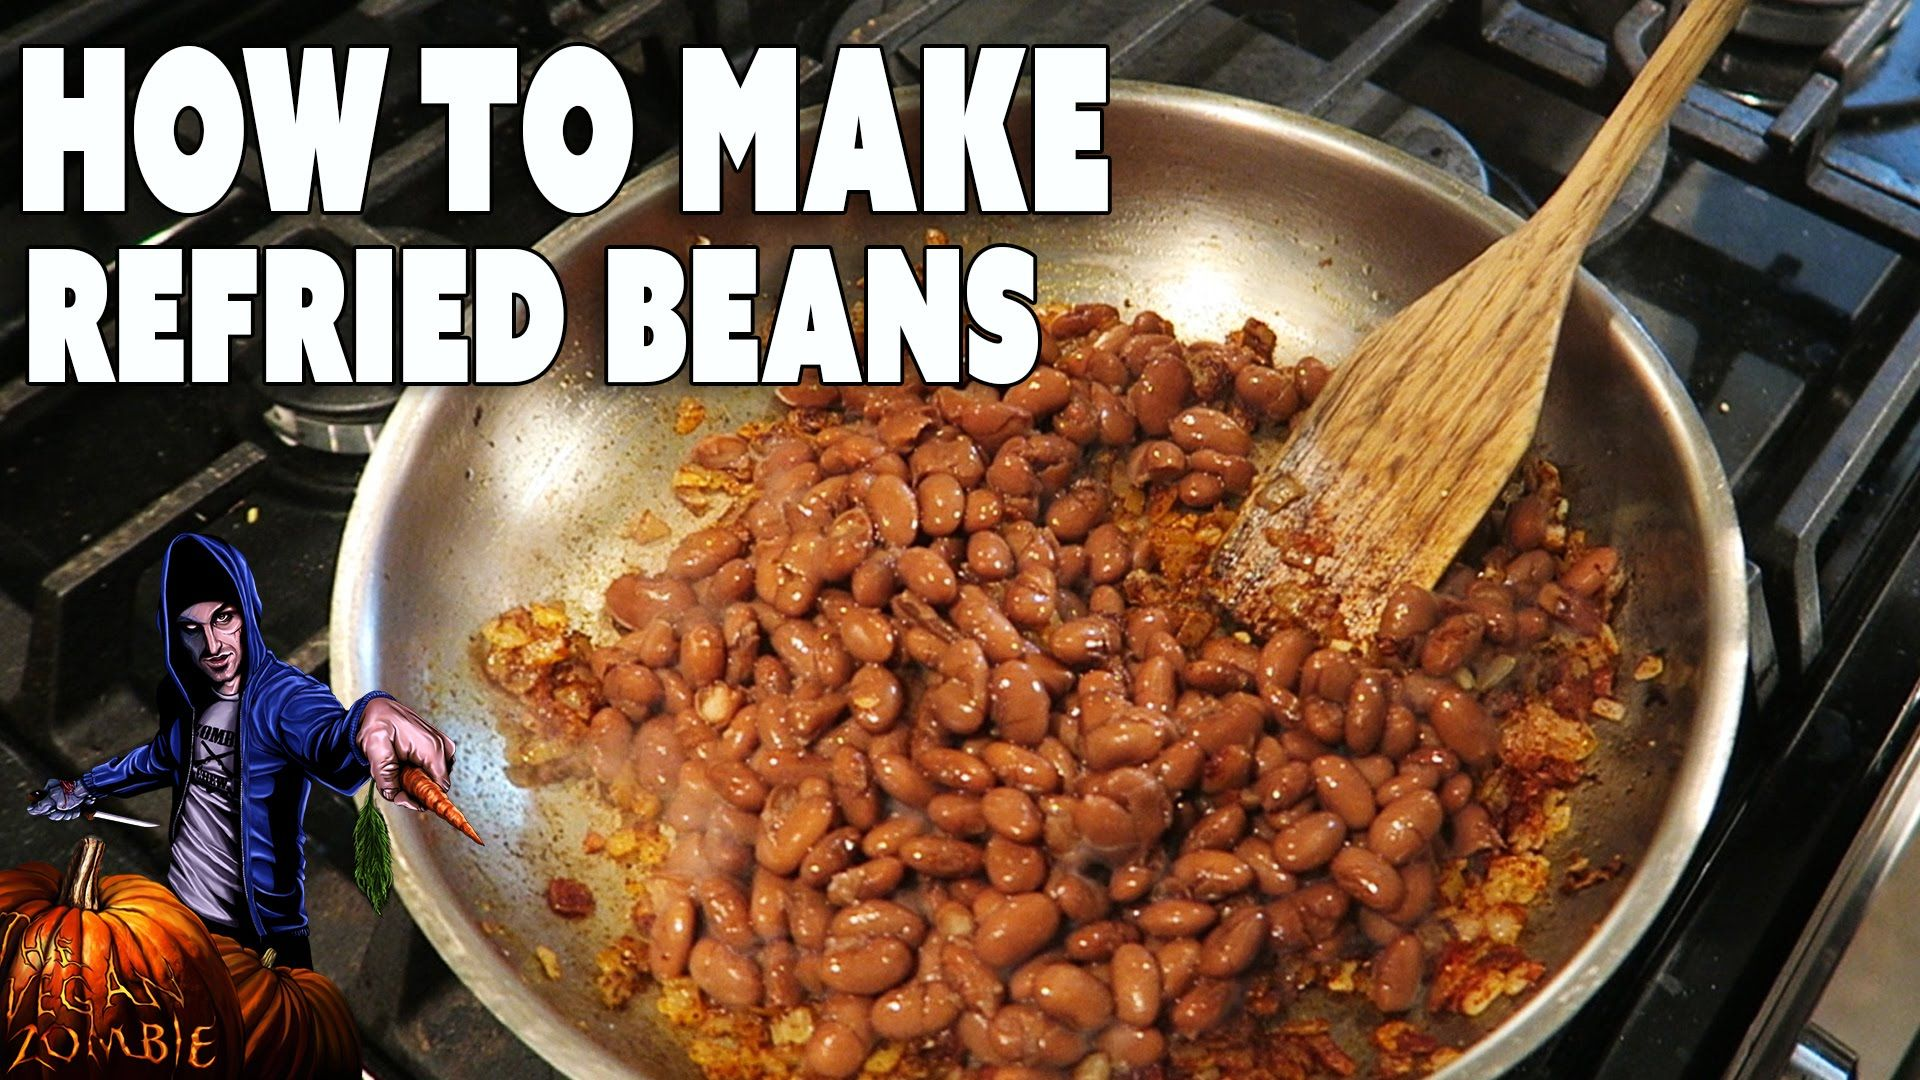 Homemade refried beans the vegan zombie easy healthy try soon homemade refried beans the vegan zombie forumfinder Images